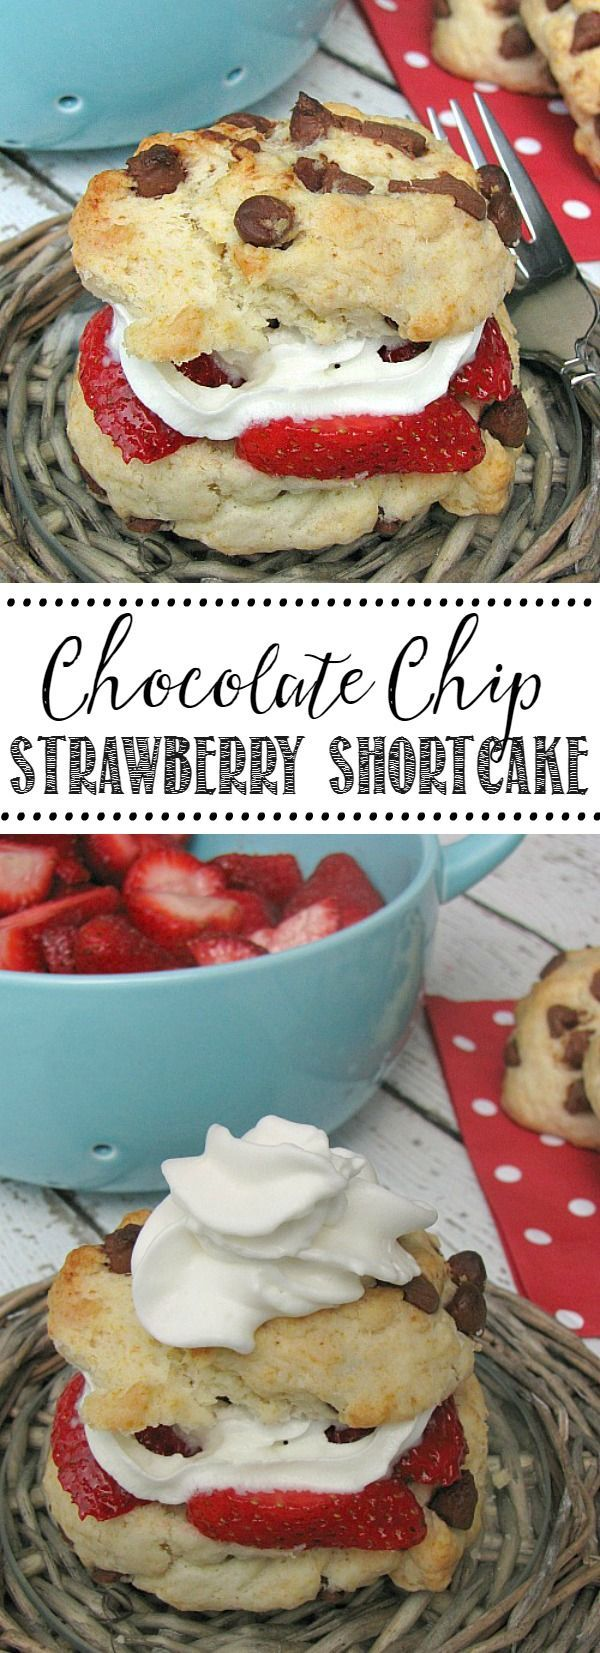 Chocolate Chip Strawberry Shortcakes - SO good and perfect for summer! Easy to make for potlucks and BBQs!